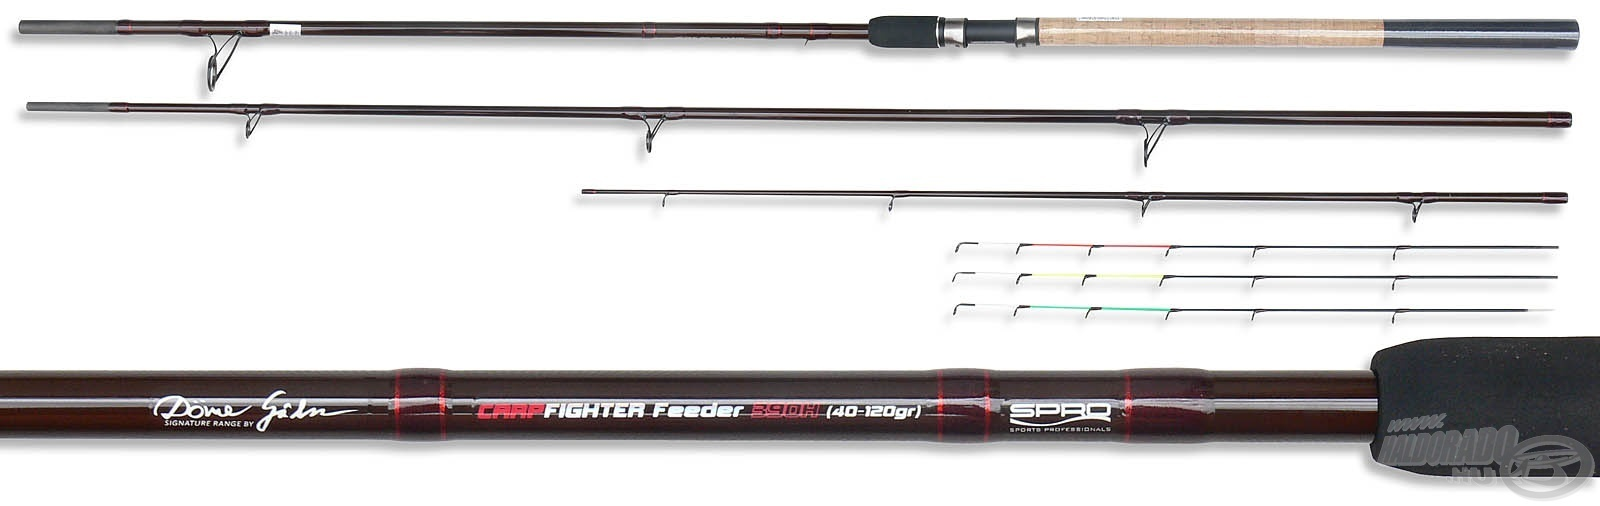 SPRO Team Feeder Carp Fighter 360MH - by D�me G�bor 15990Ft